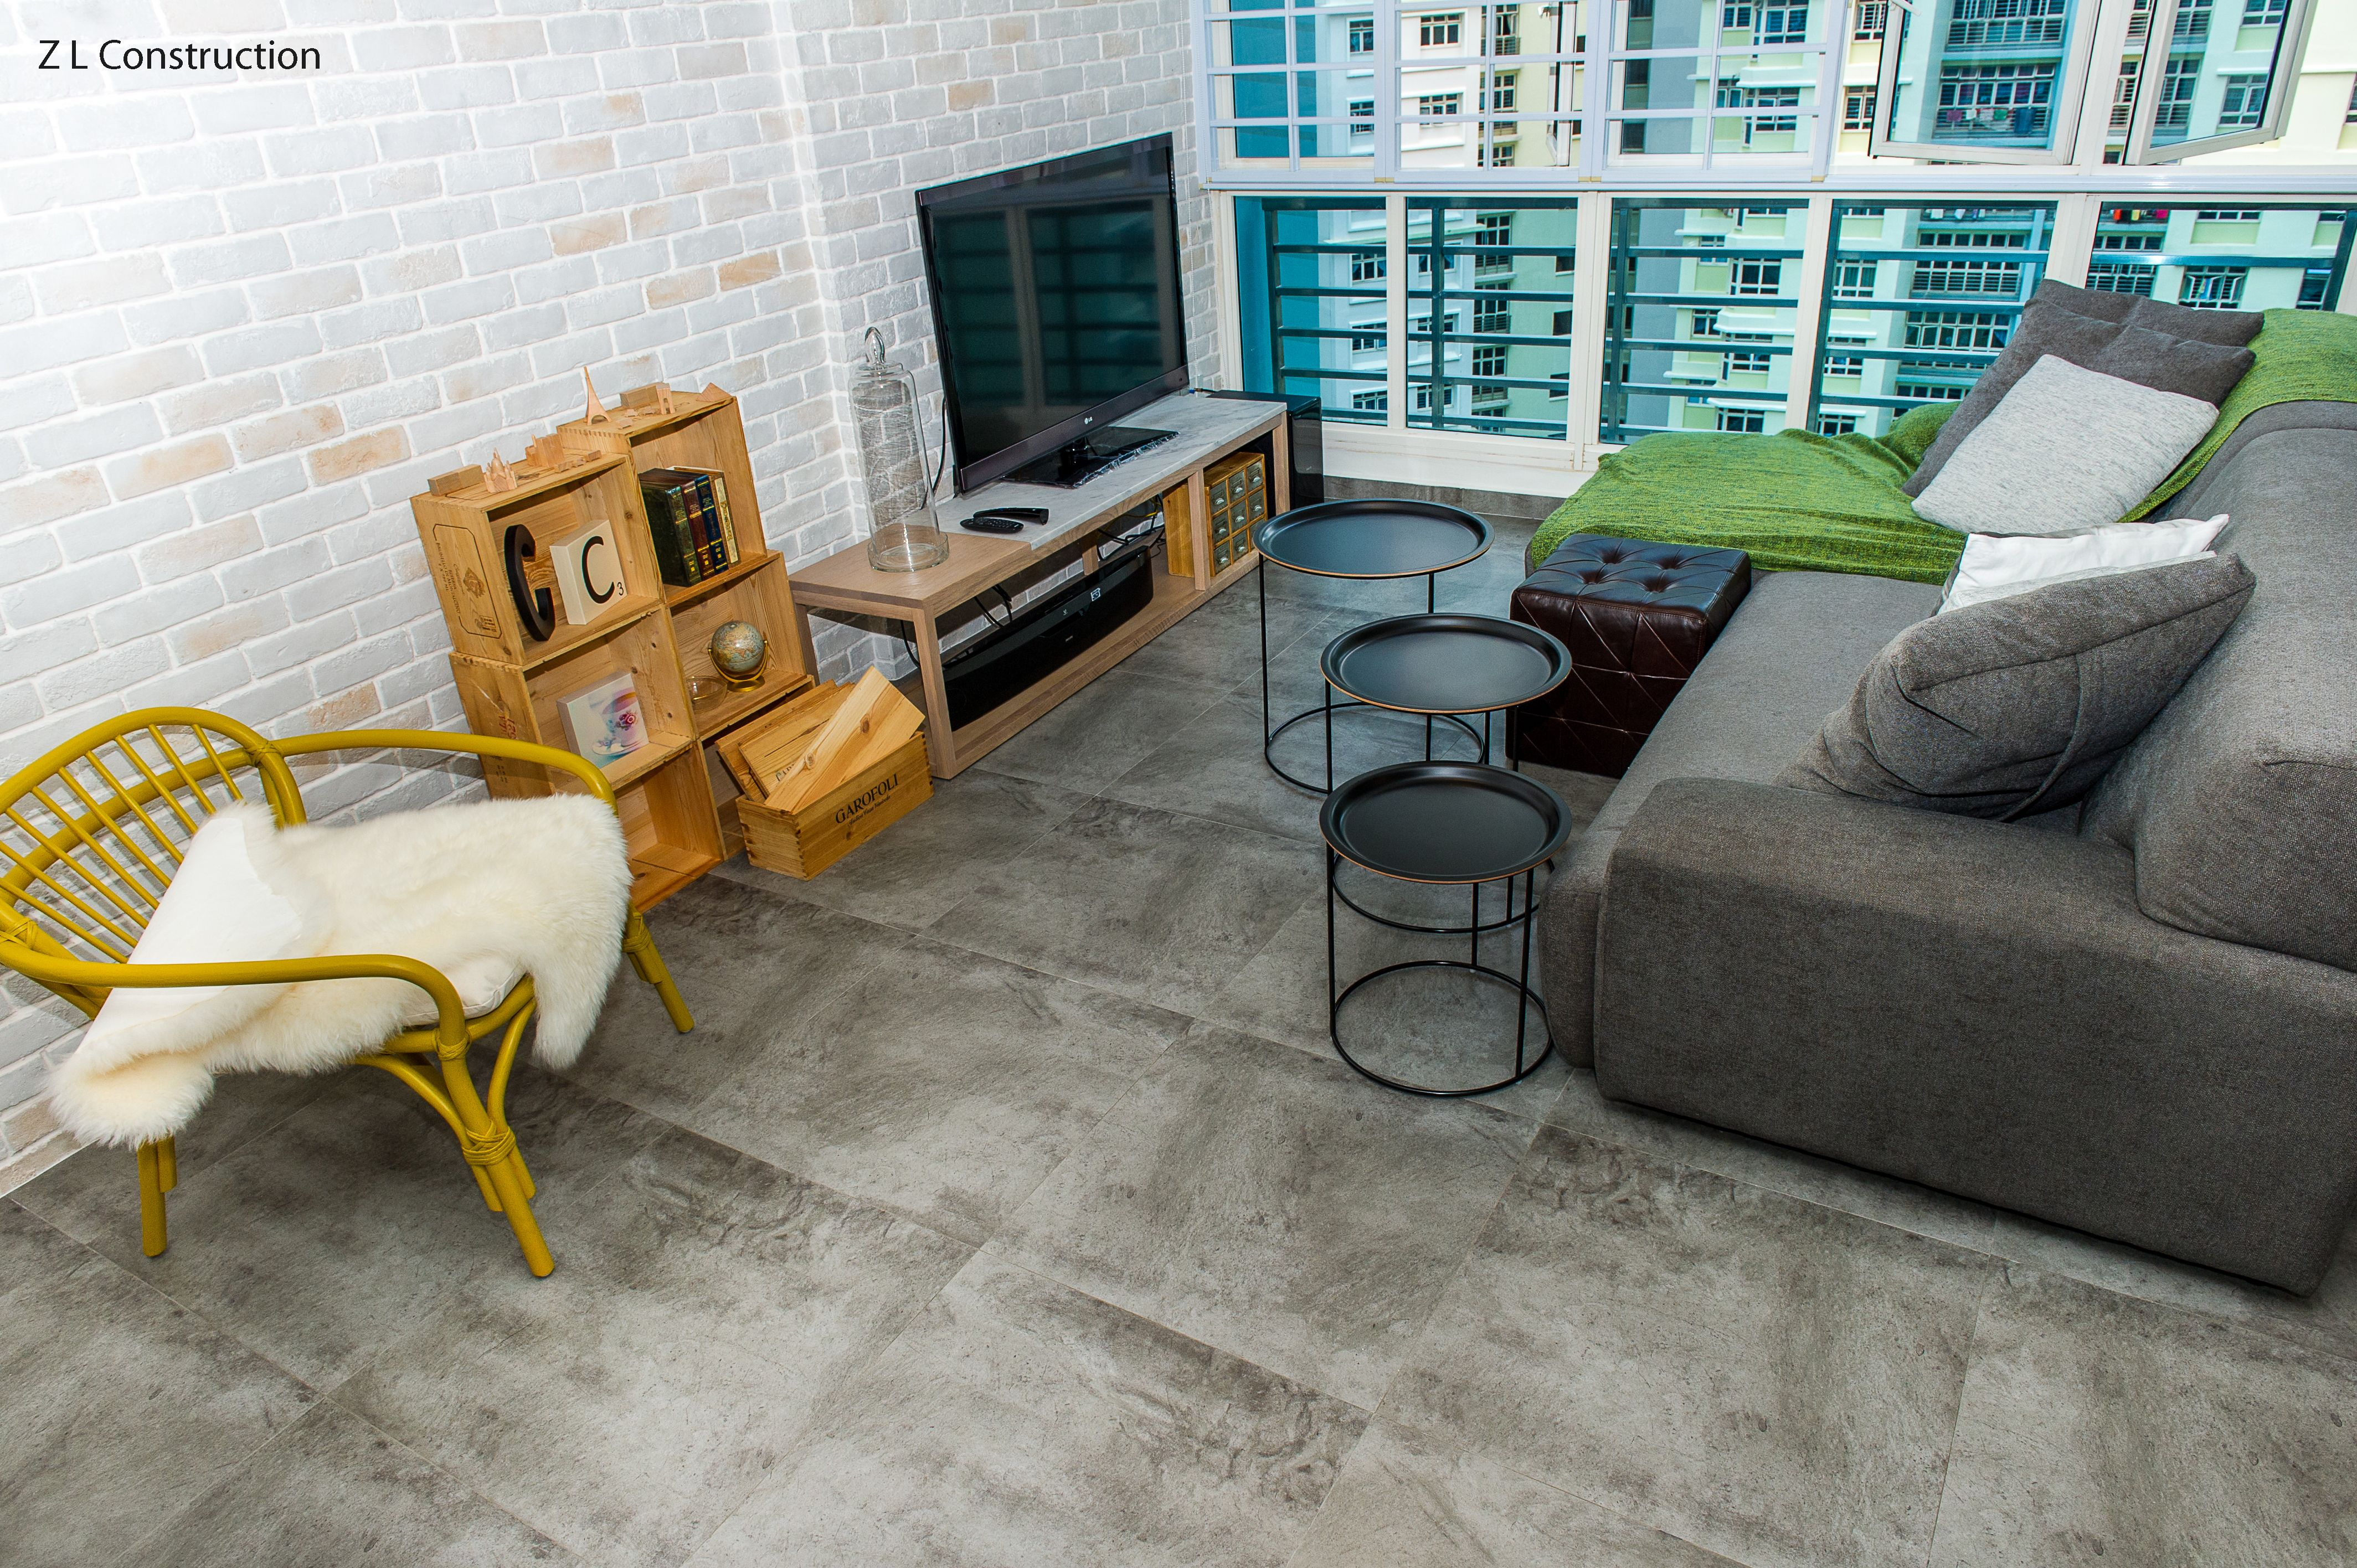 z l construction (singapore) \ cement screed-like floor tiles